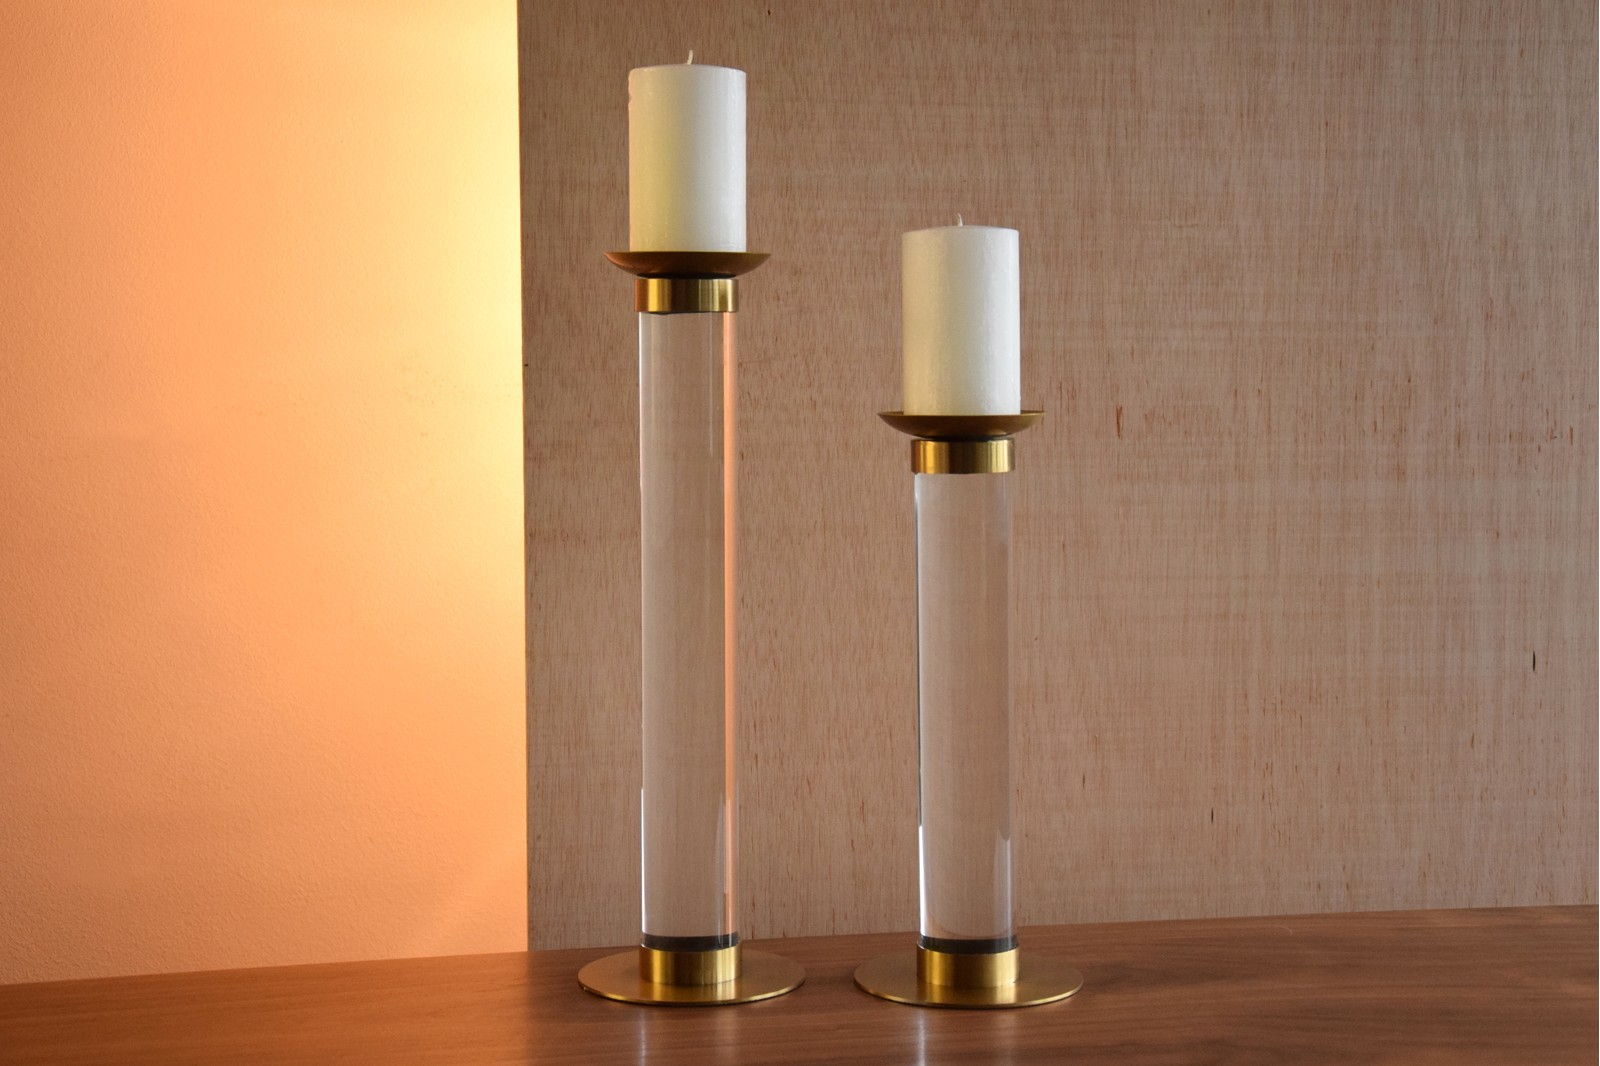 CANDLEHOLDER IN ACRYLIC AND STAINLESS STEEL. SMALL